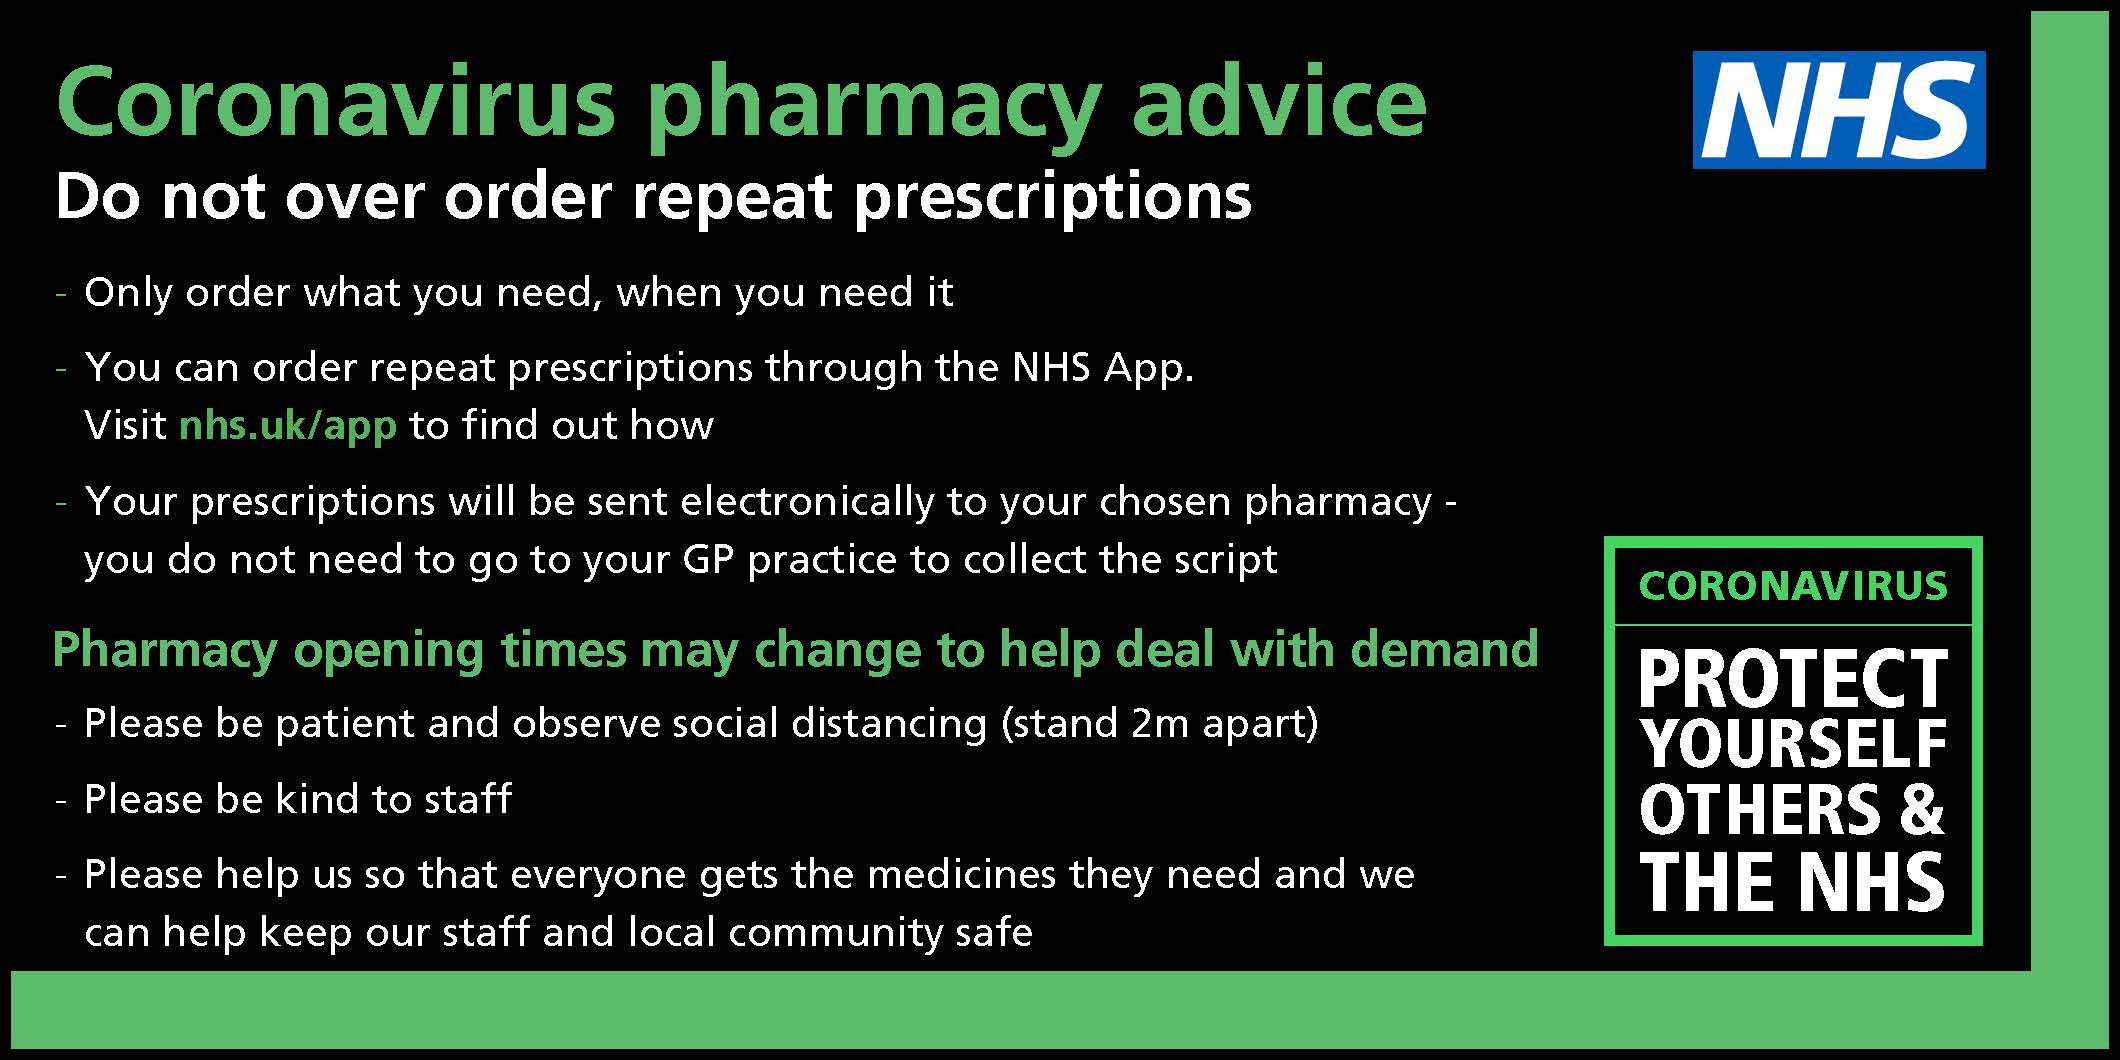 Coronavirus Pharmacy Advice do not over order repeat prescriptions only order what you need when you need it you can order repeat prescriptions through the NHS app visit nhs.uk/app to find out how your prescriptions will be sent electronically to your chosen pharmacy you do not need to go to your gp practice to collect the script pharmacy opening times may change to help deal with deman please be patient and observe social distancing stand 2m apart please be kind to staff please help us so that everyone gets the medicines they need and we can help keep our staff and local community safe